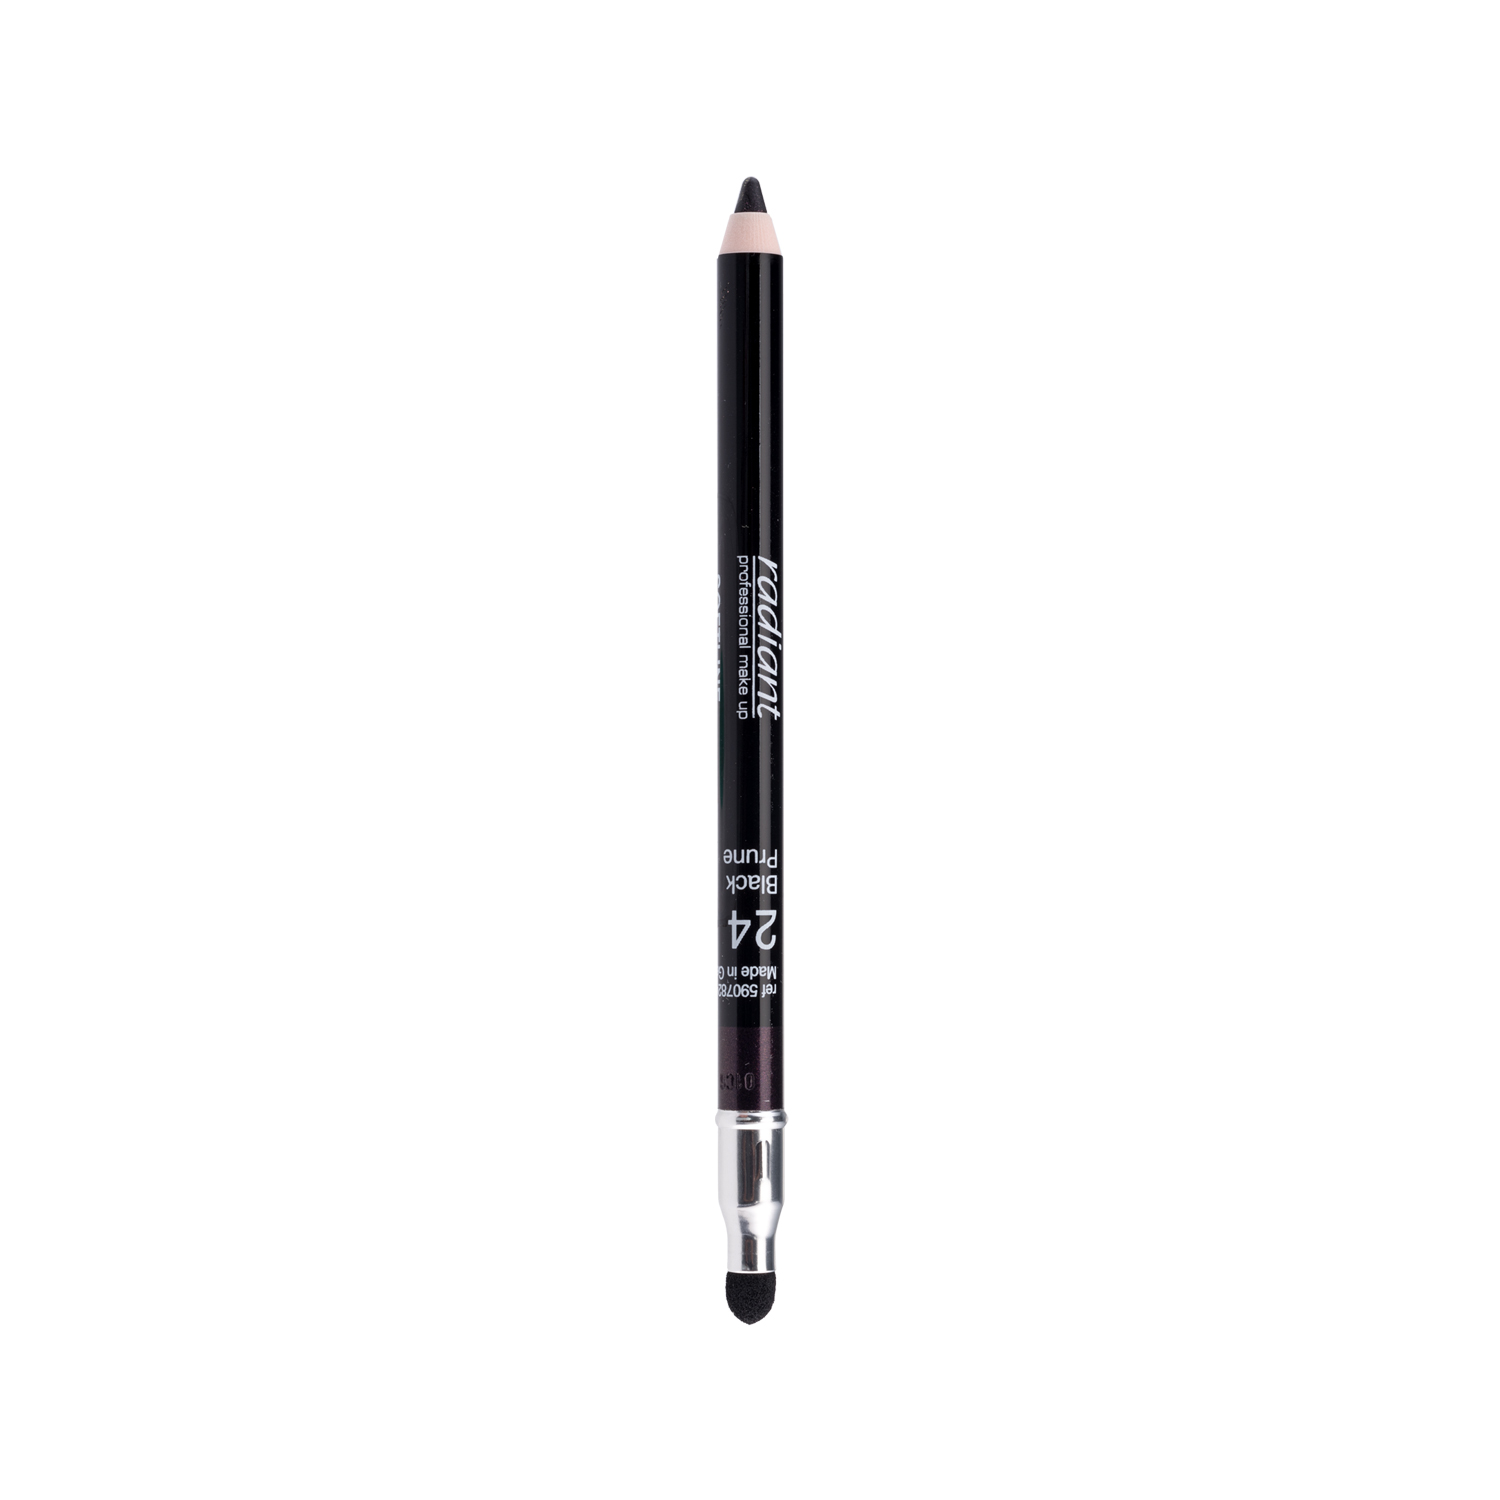 SOFTLINE WATERPROOF EYE PENCIL (24 Black Prune)